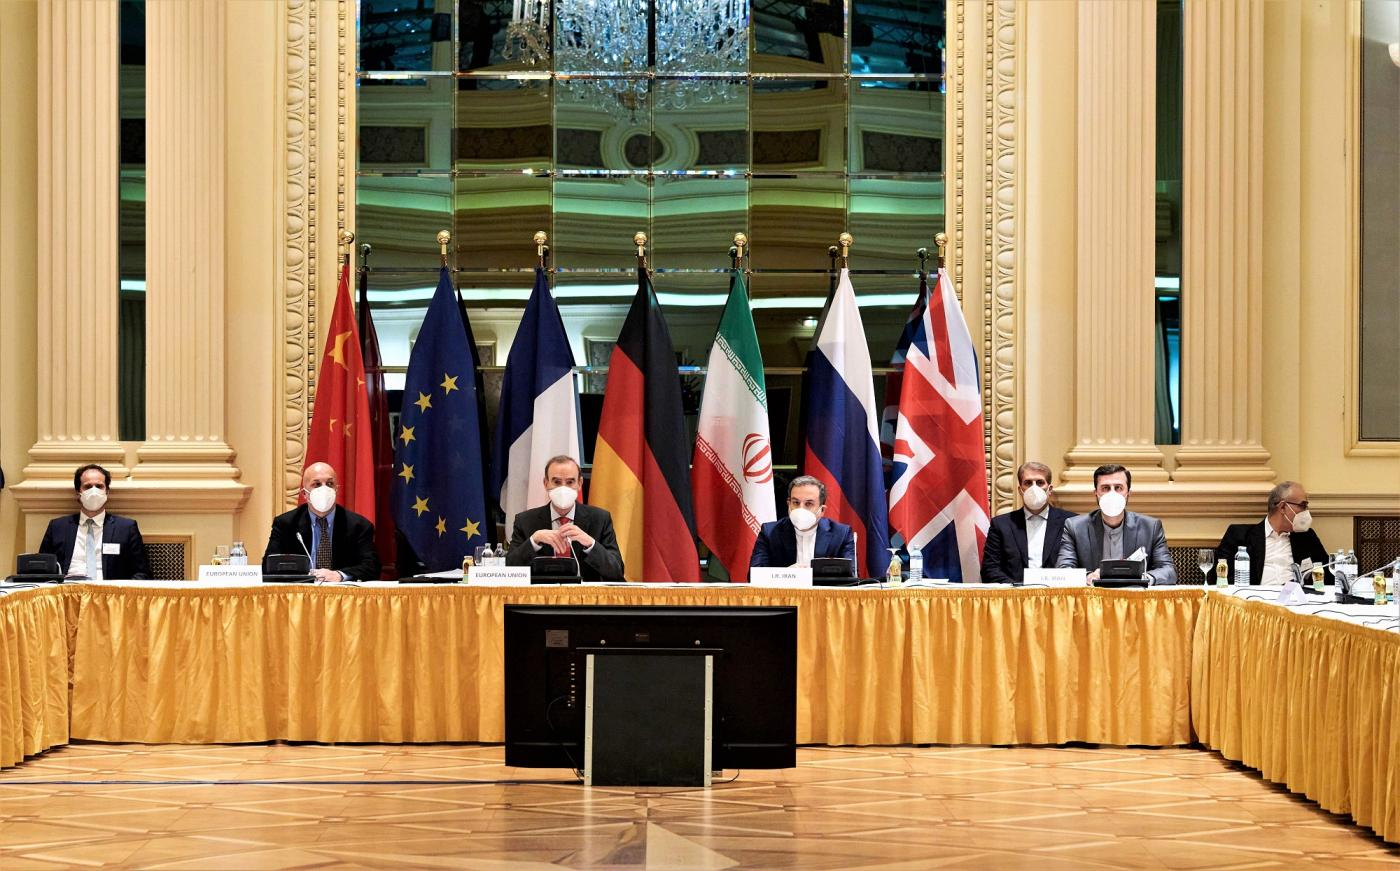 World powers, Iran, US launch indirect talks to revive nuclear deal